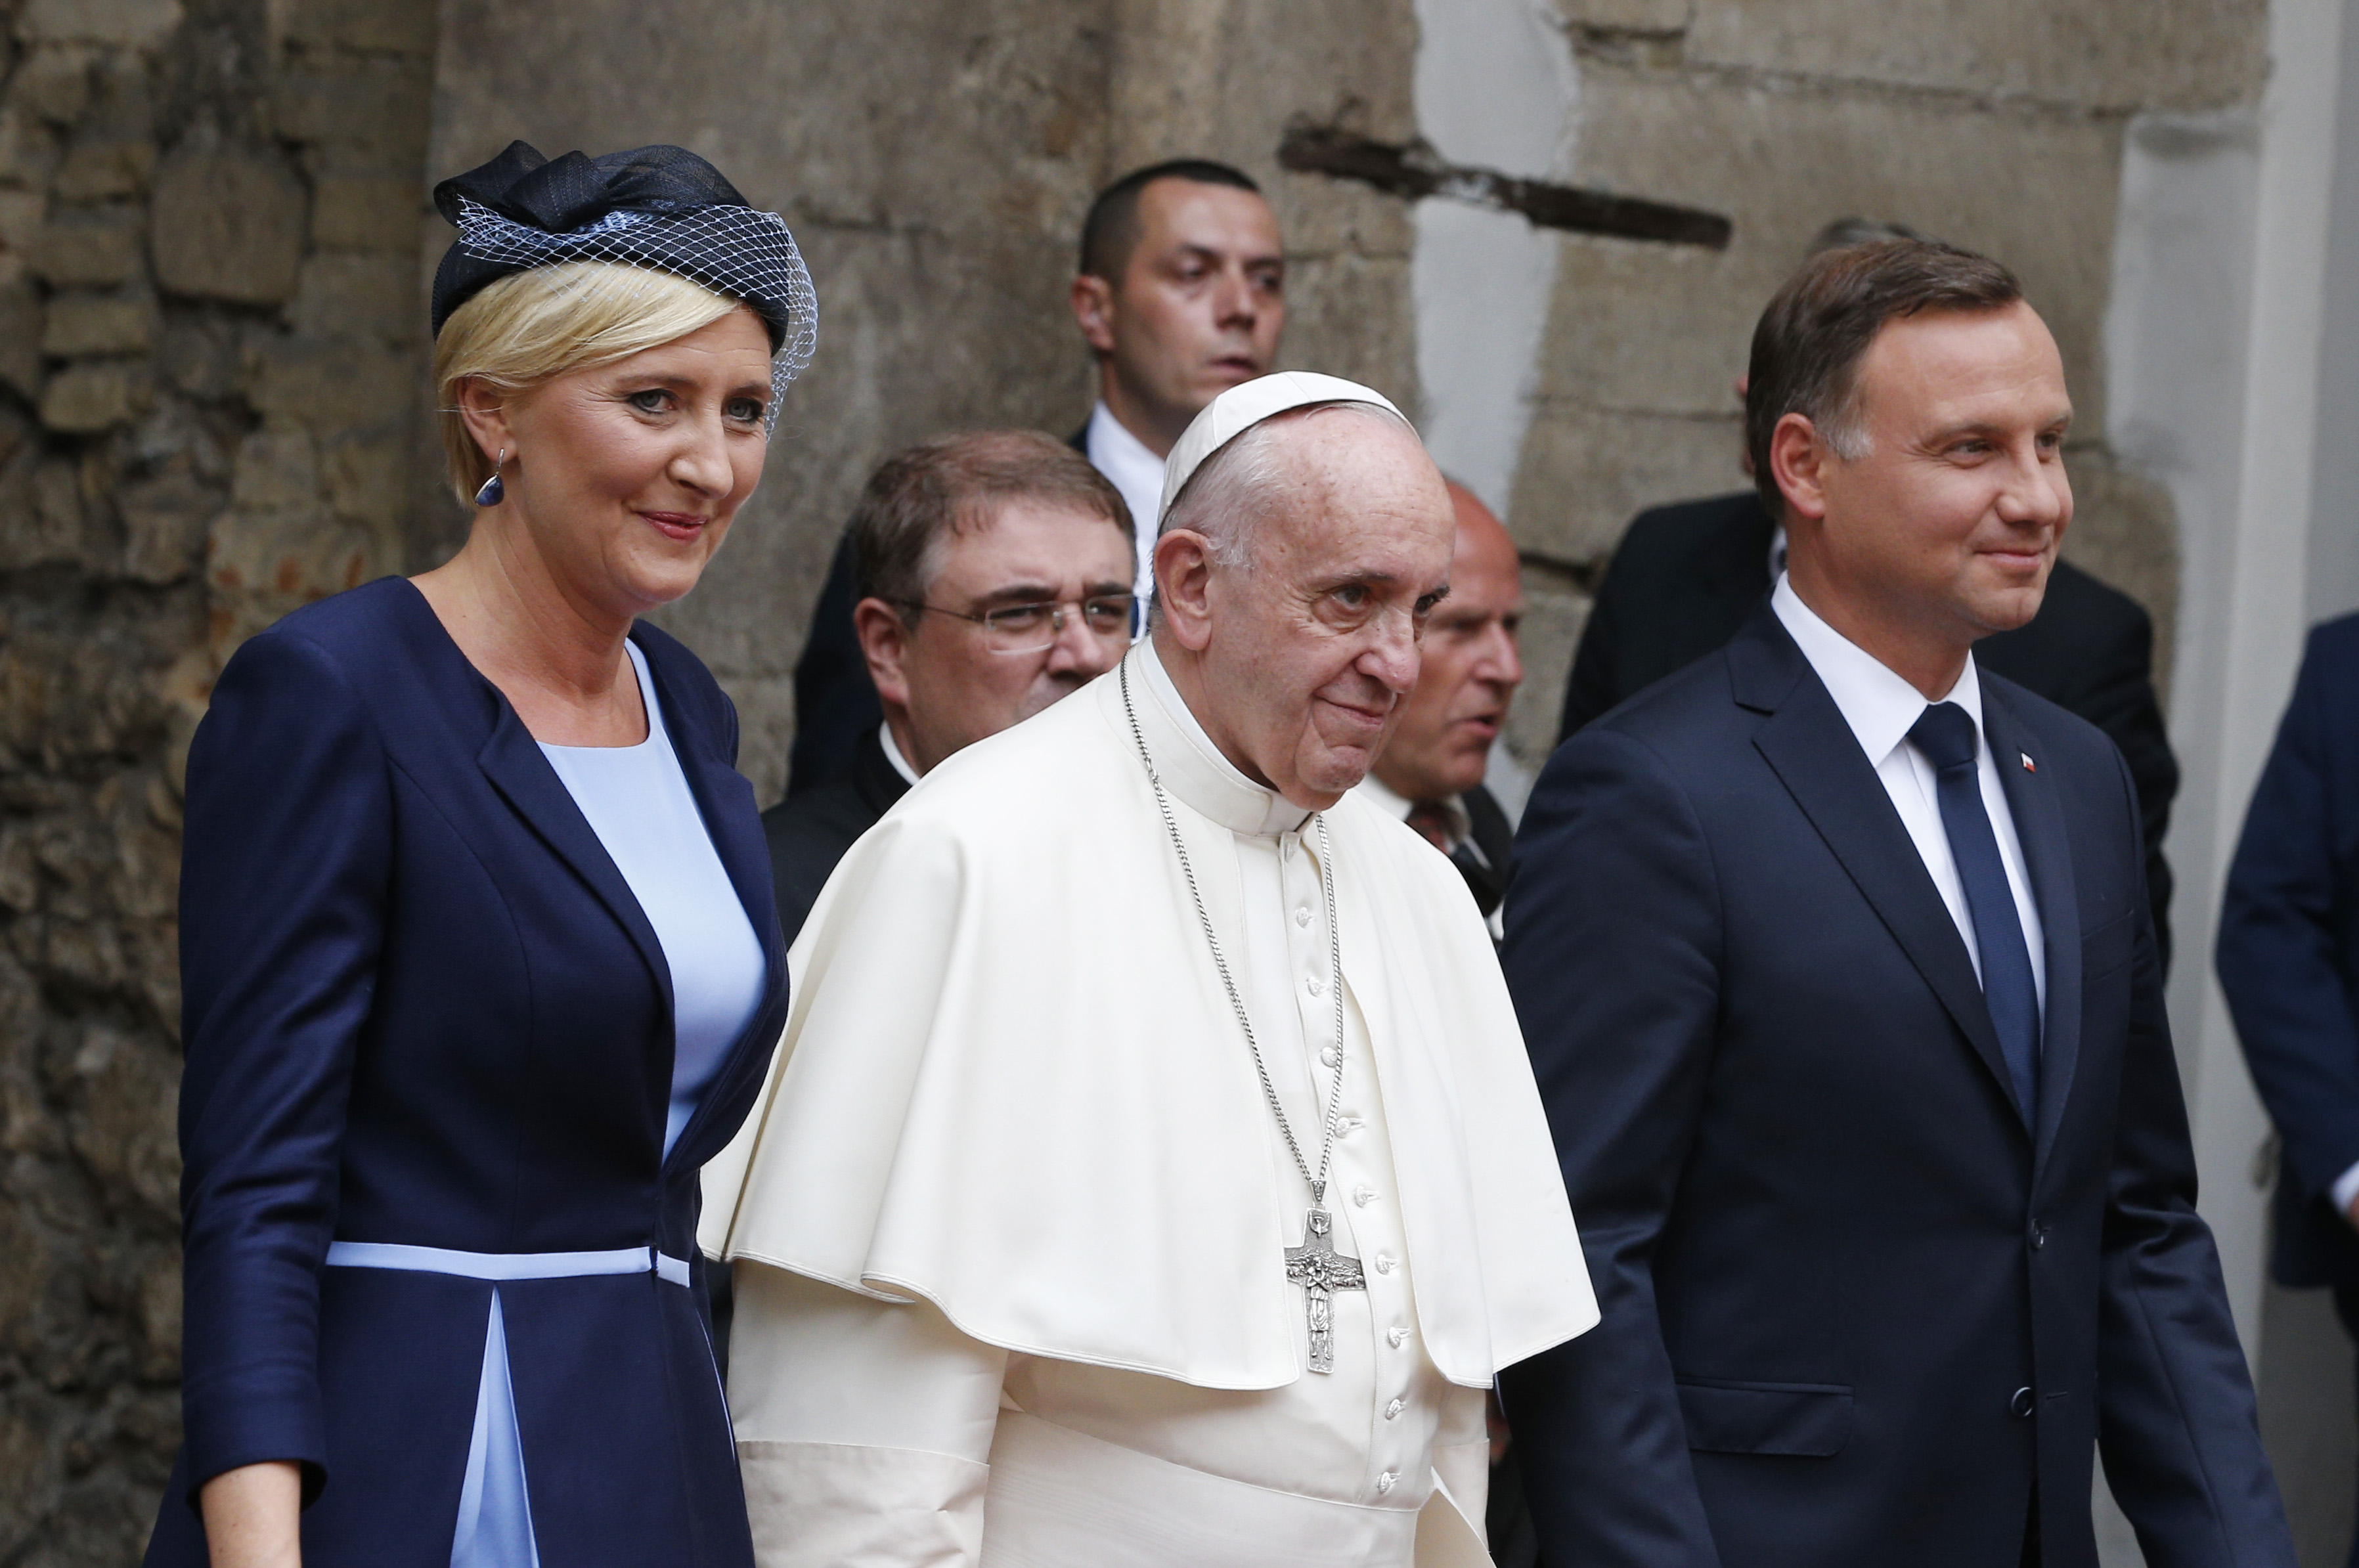 Pope Francis and President Duda